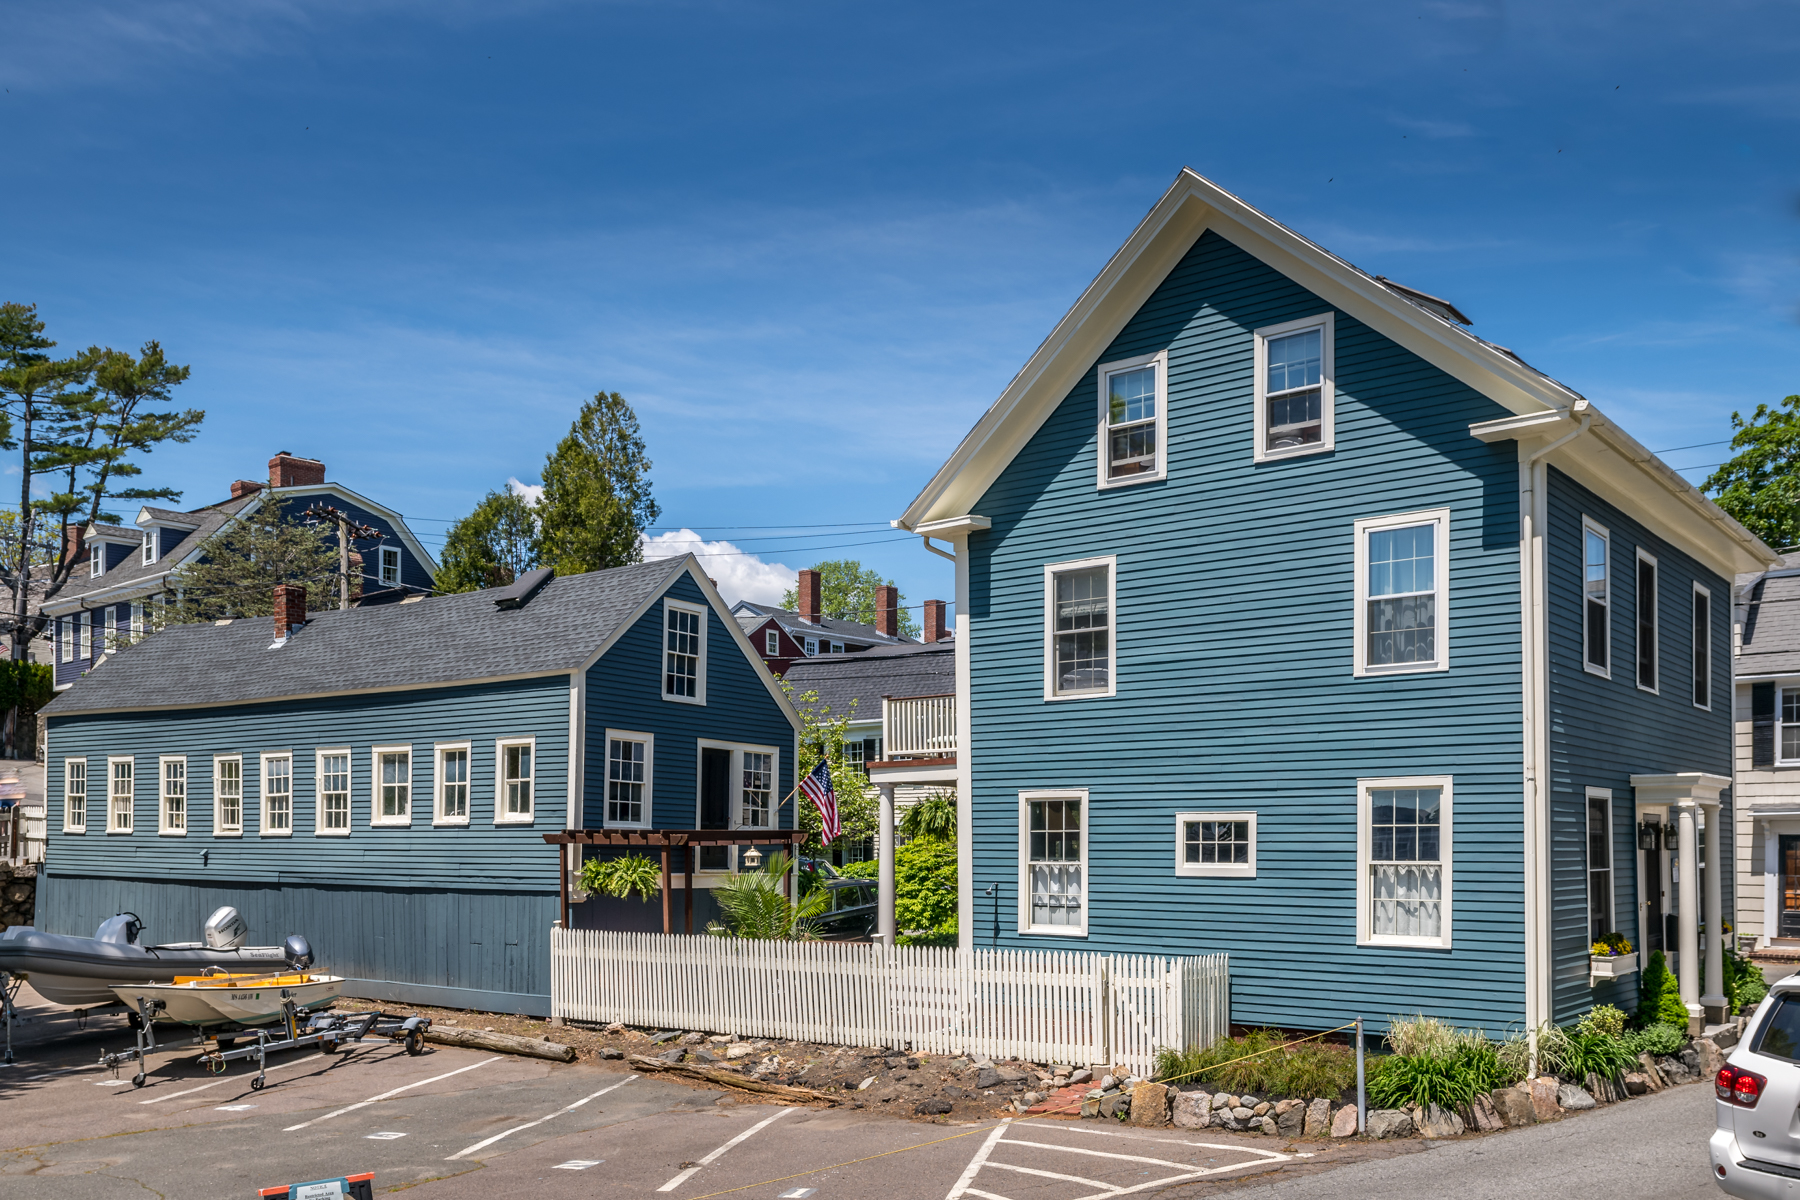 Single Family Homes for Active at Exquisitely Designed Classic Antique 12 Front Street Marblehead, Massachusetts 01945 United States